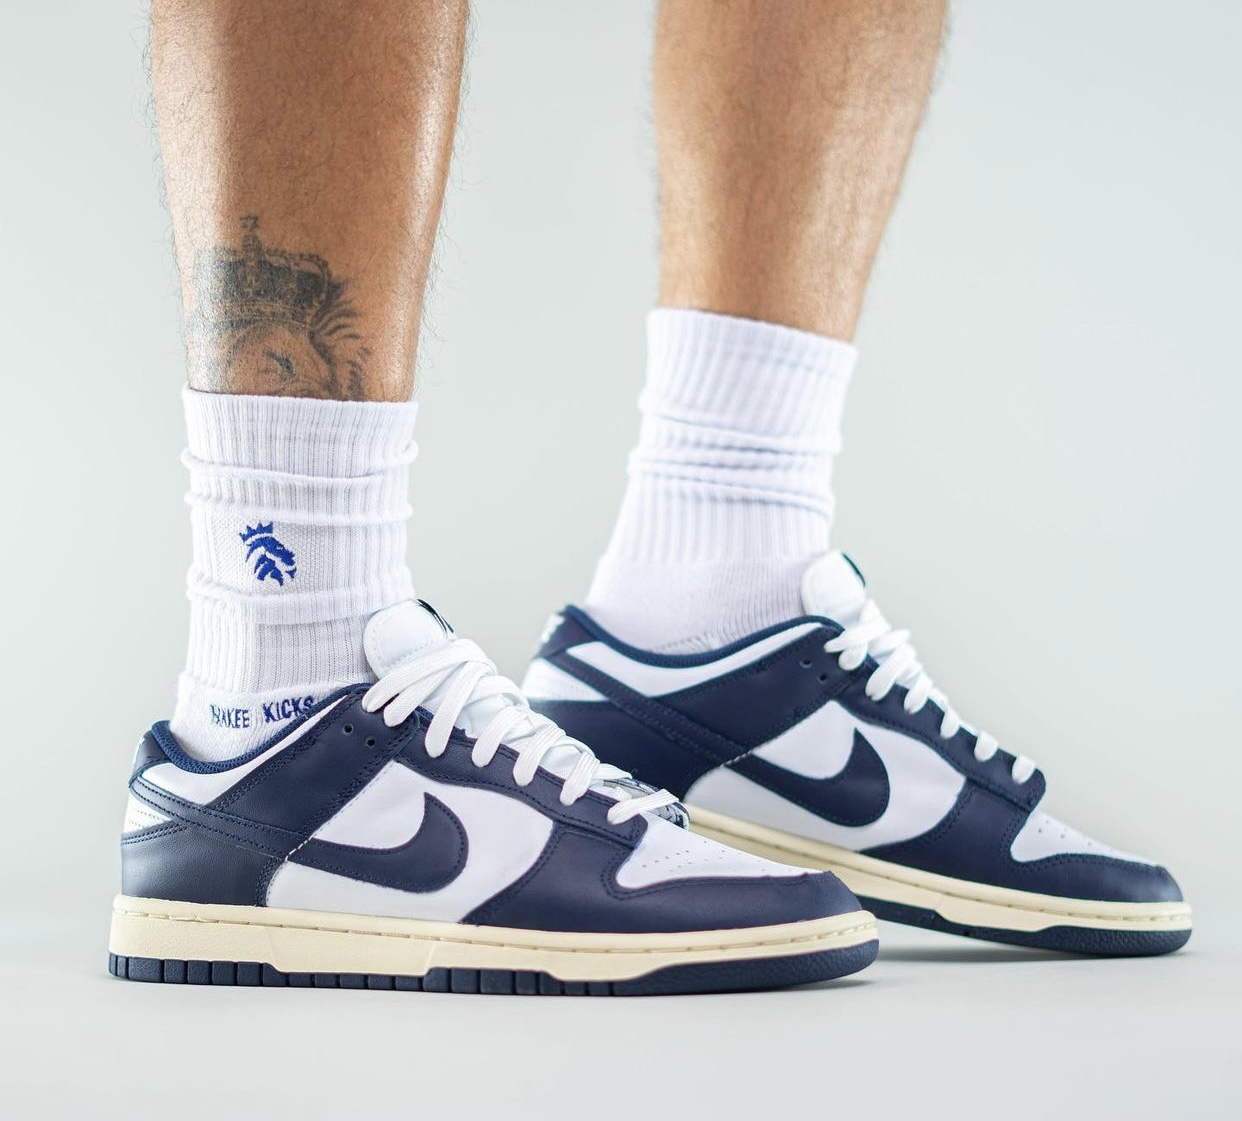 Nike Dunk Low Navy White Aged Release Date On-Feet